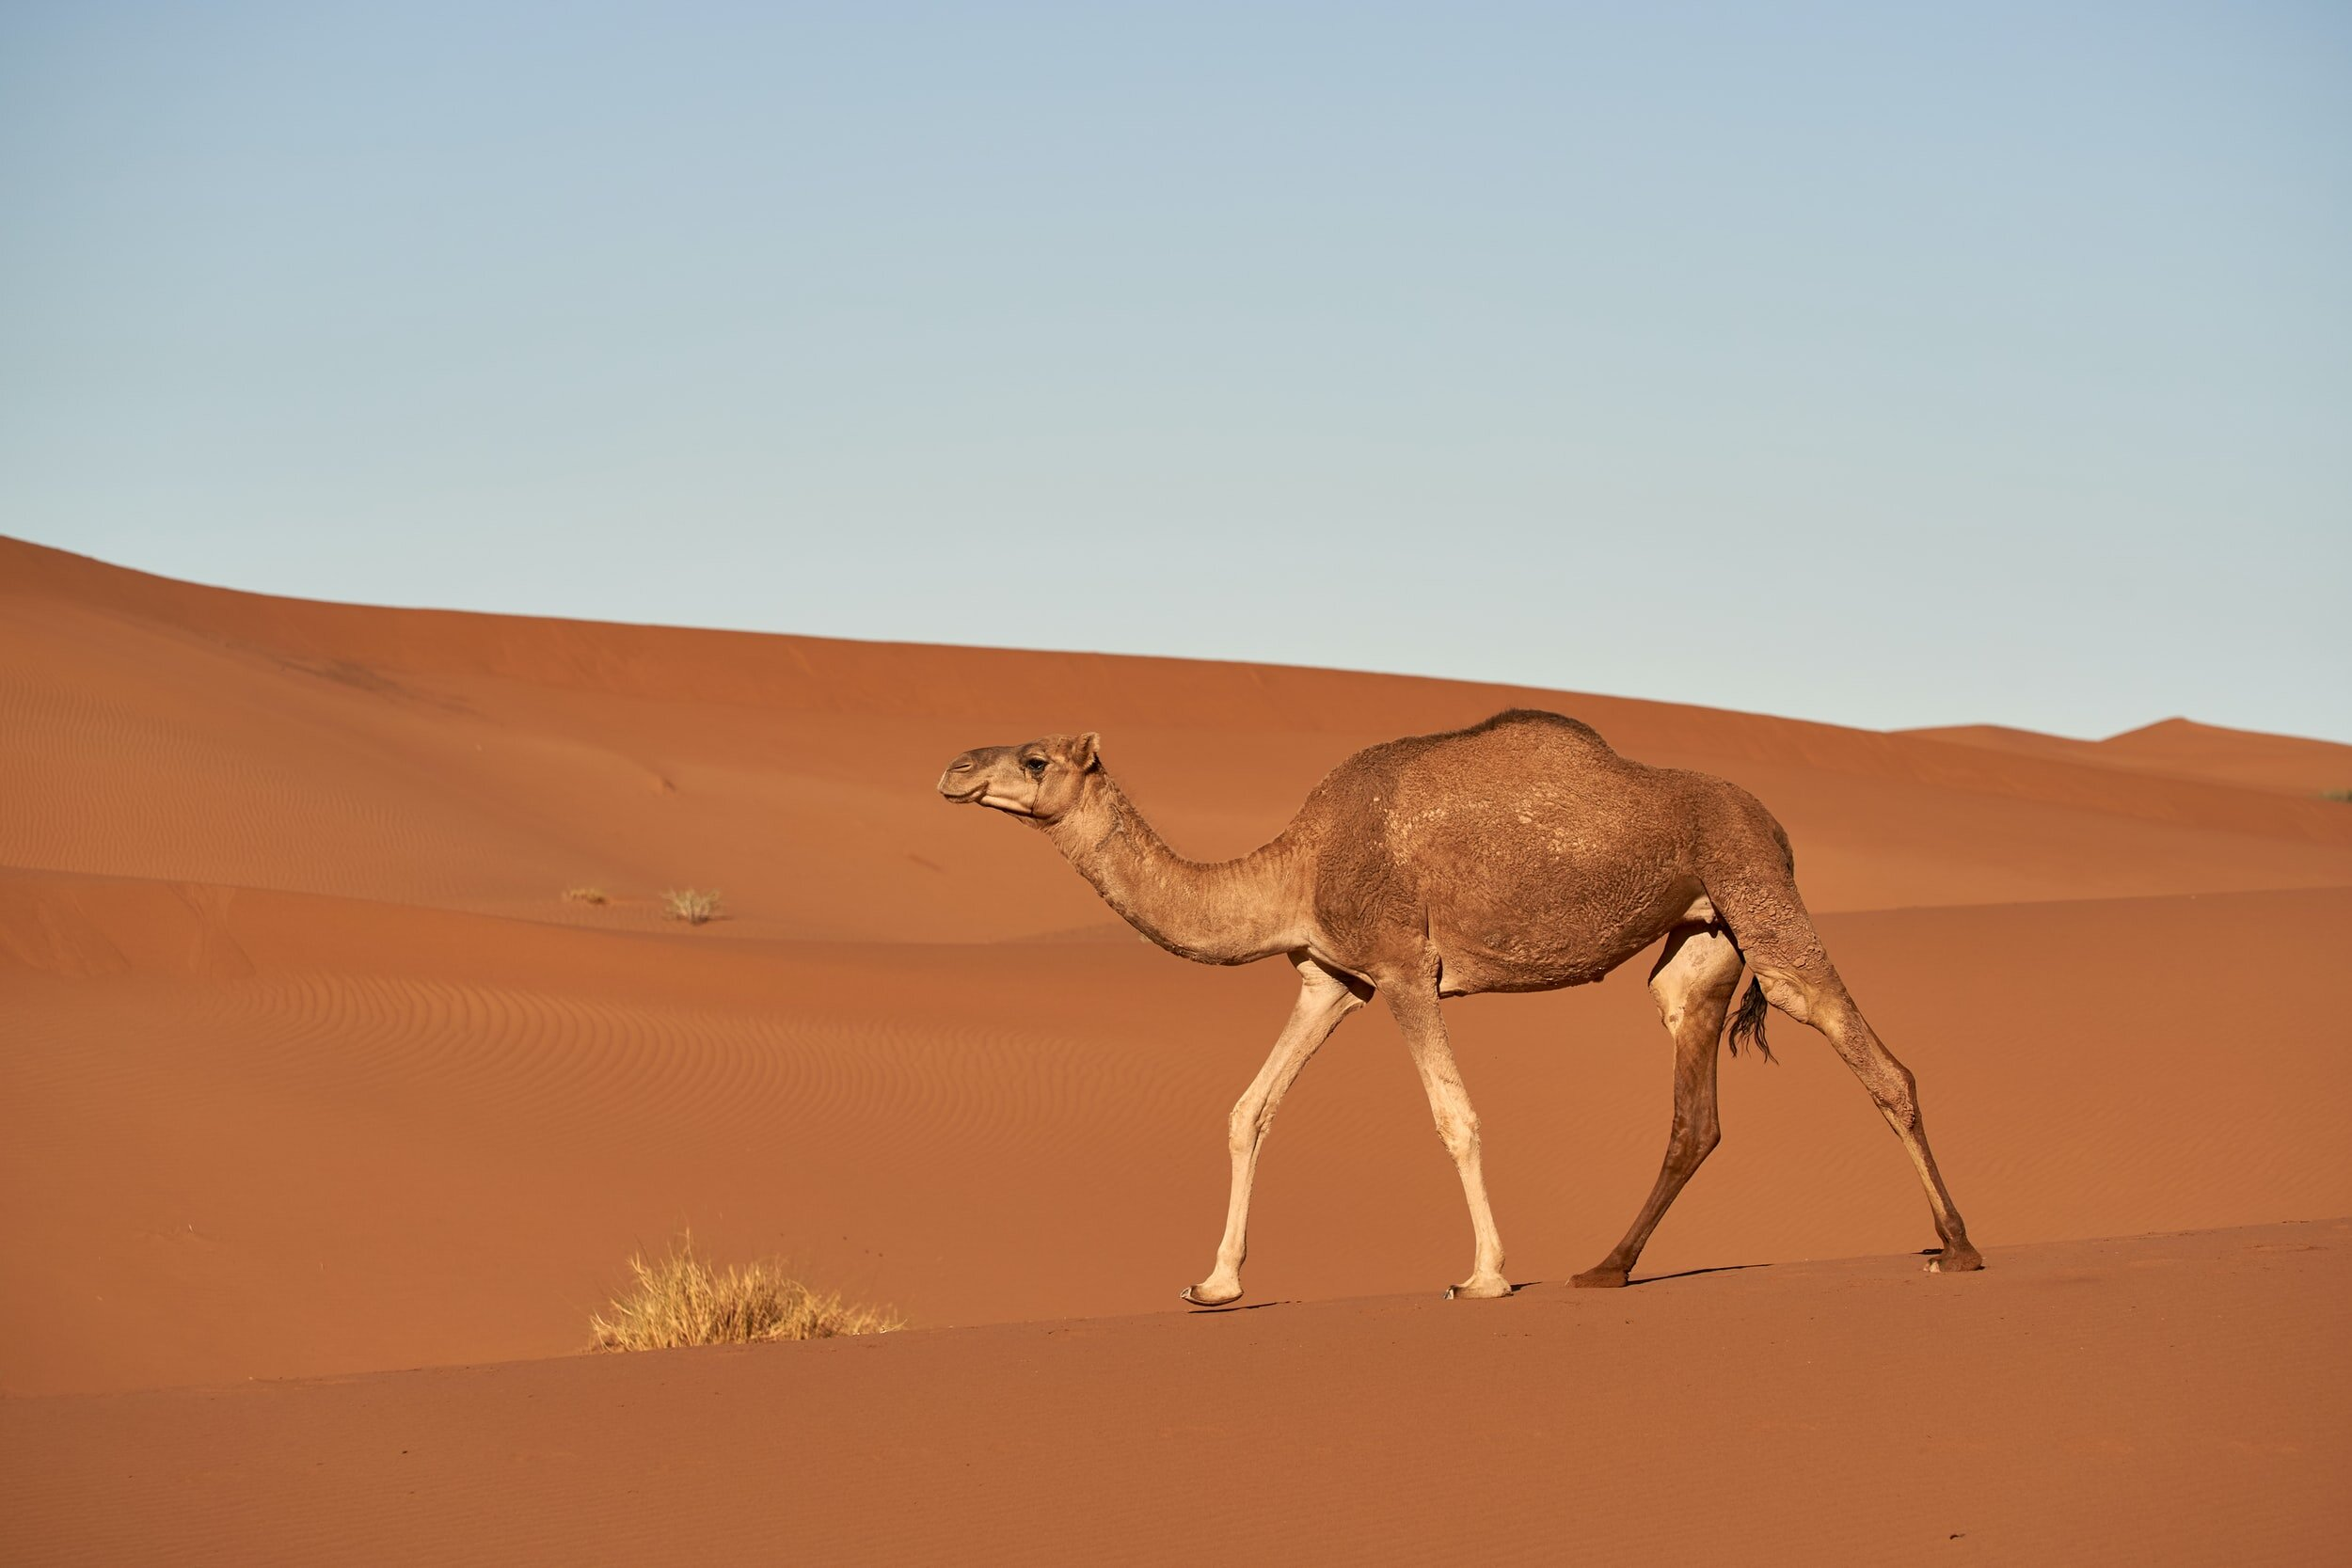 The camel is a common animal paired with the perl programming language — on the Perl website and on book covers.